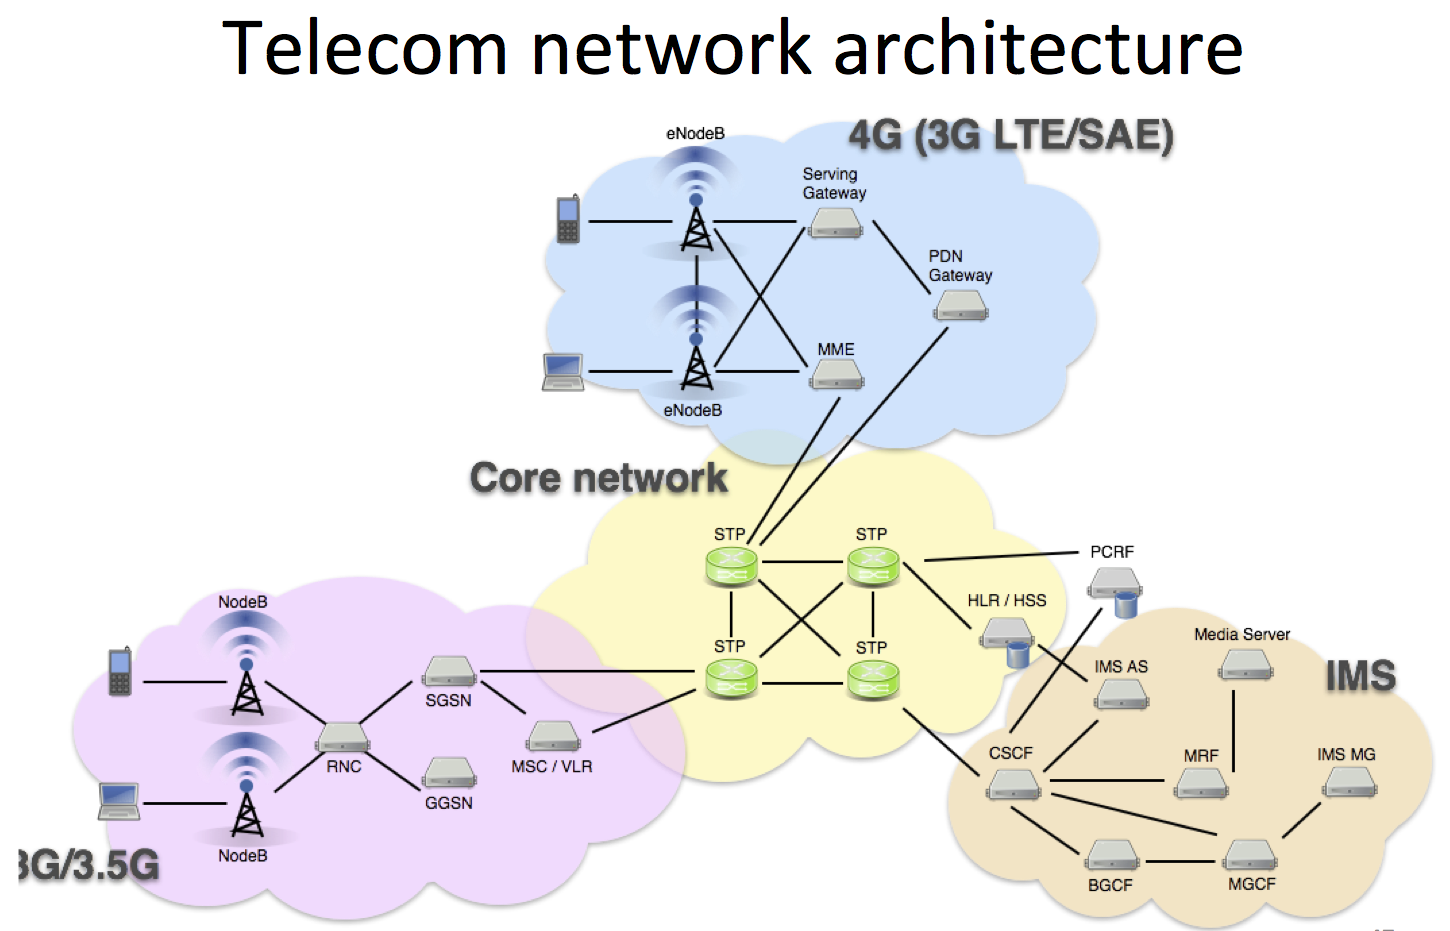 analysis of mobile ip networks An isaca white paper user-provided information, network analysis the advent of gps, wi-fi, wireless mobile networks and ip location.